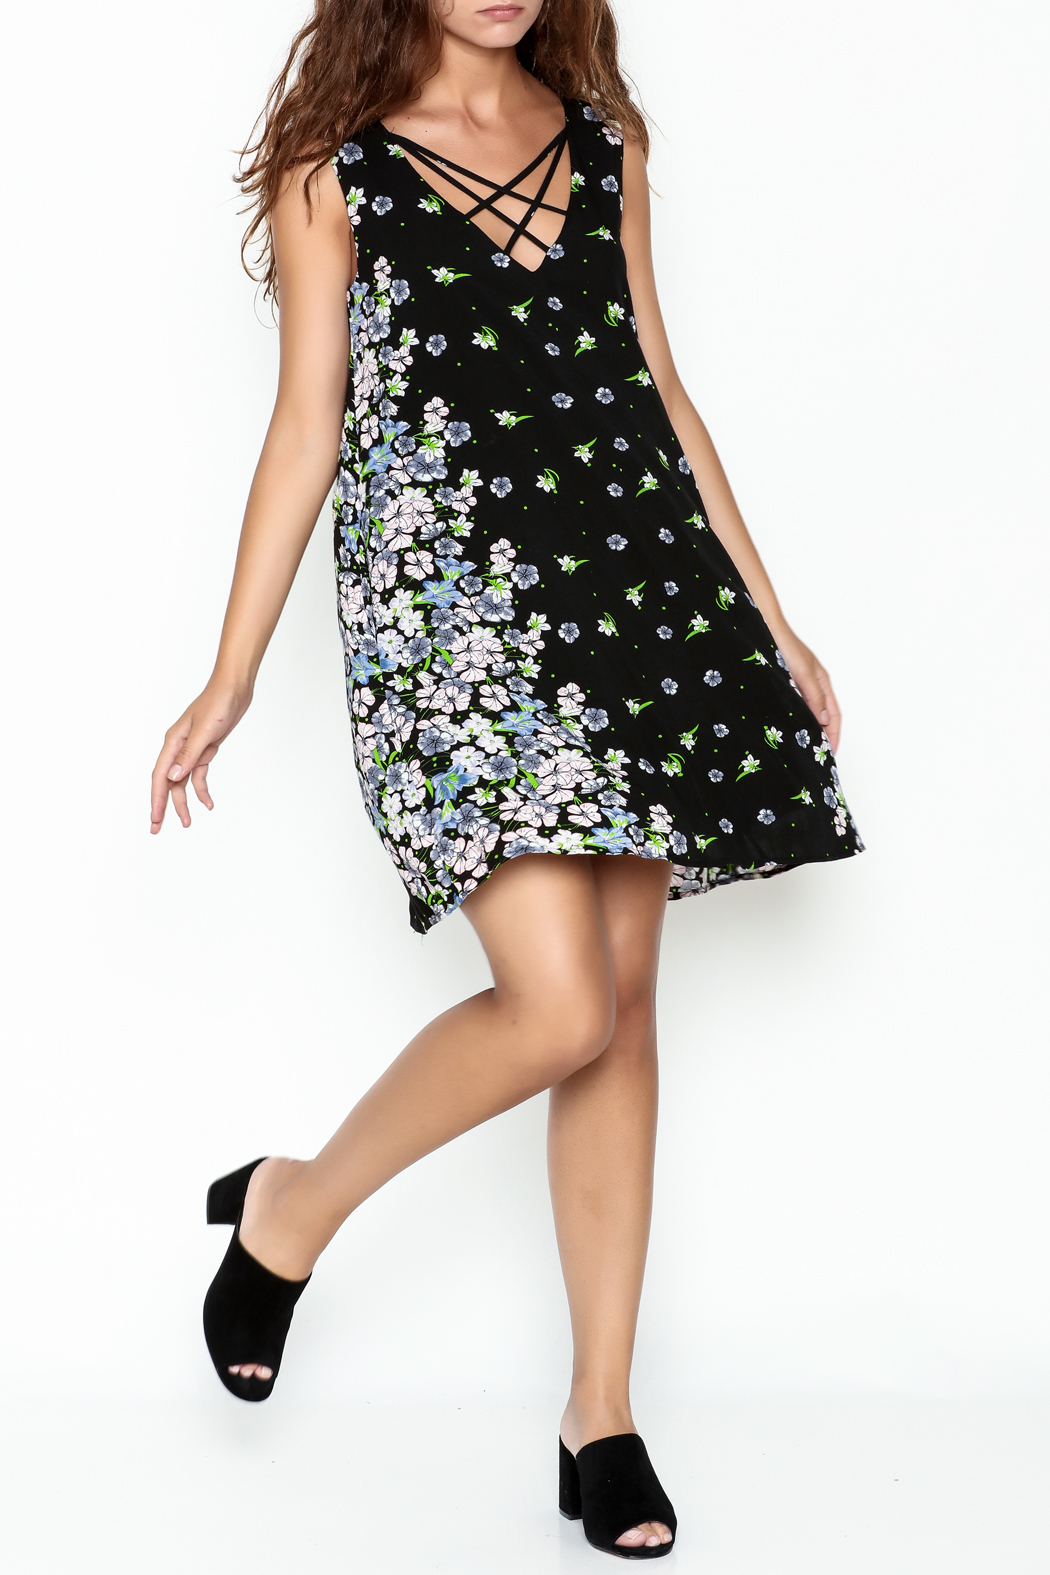 y&i clothing boutique Criss Cross Swing Dress - Side Cropped Image